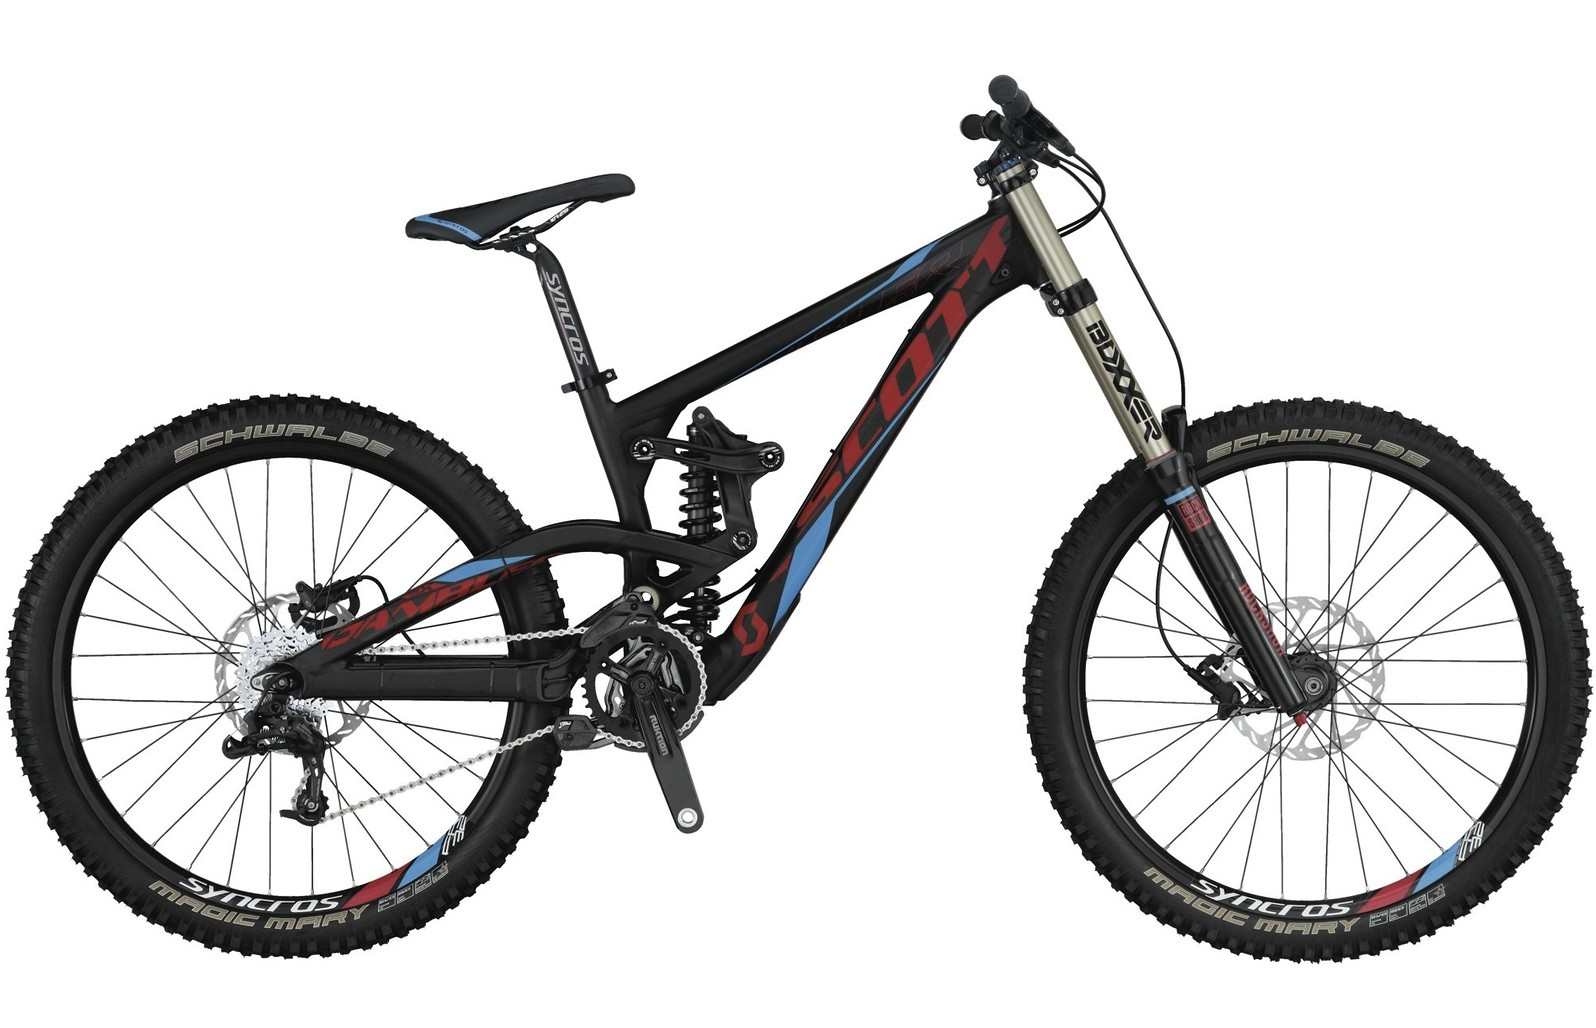 2014 Scott Gambler 30 Bike Reviews Comparisons Specs